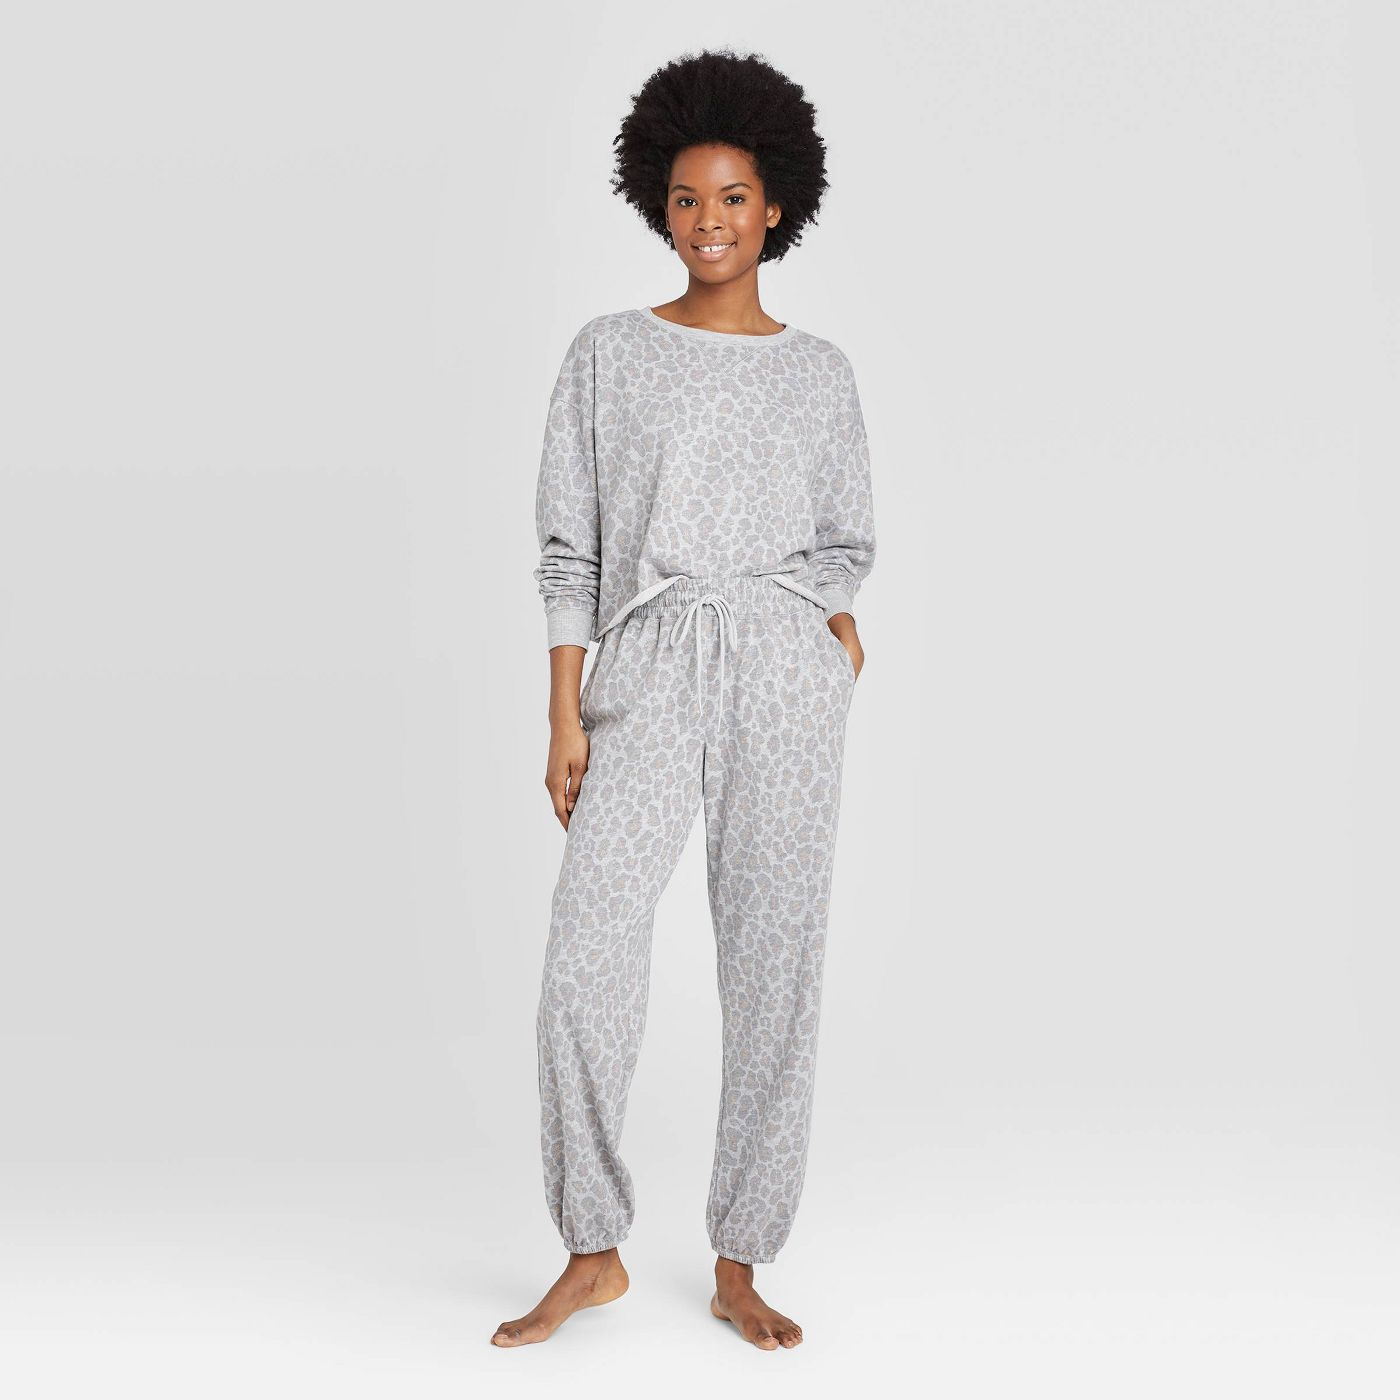 Slip into one of these adorably chic and on trend Loungewear Sets and Matching Sweatsuits, look cute as could be from the comfort of your sofa, and and stay on budget. These adorable and under $50 cozy and chic sets will get you through the season in total comfort! | glitterinc.com | @glitterinc // Colsie Women's Leopard Print Cropped Lounge Sweatshirt + Colsie Women's Leopard Print Jogger Pants